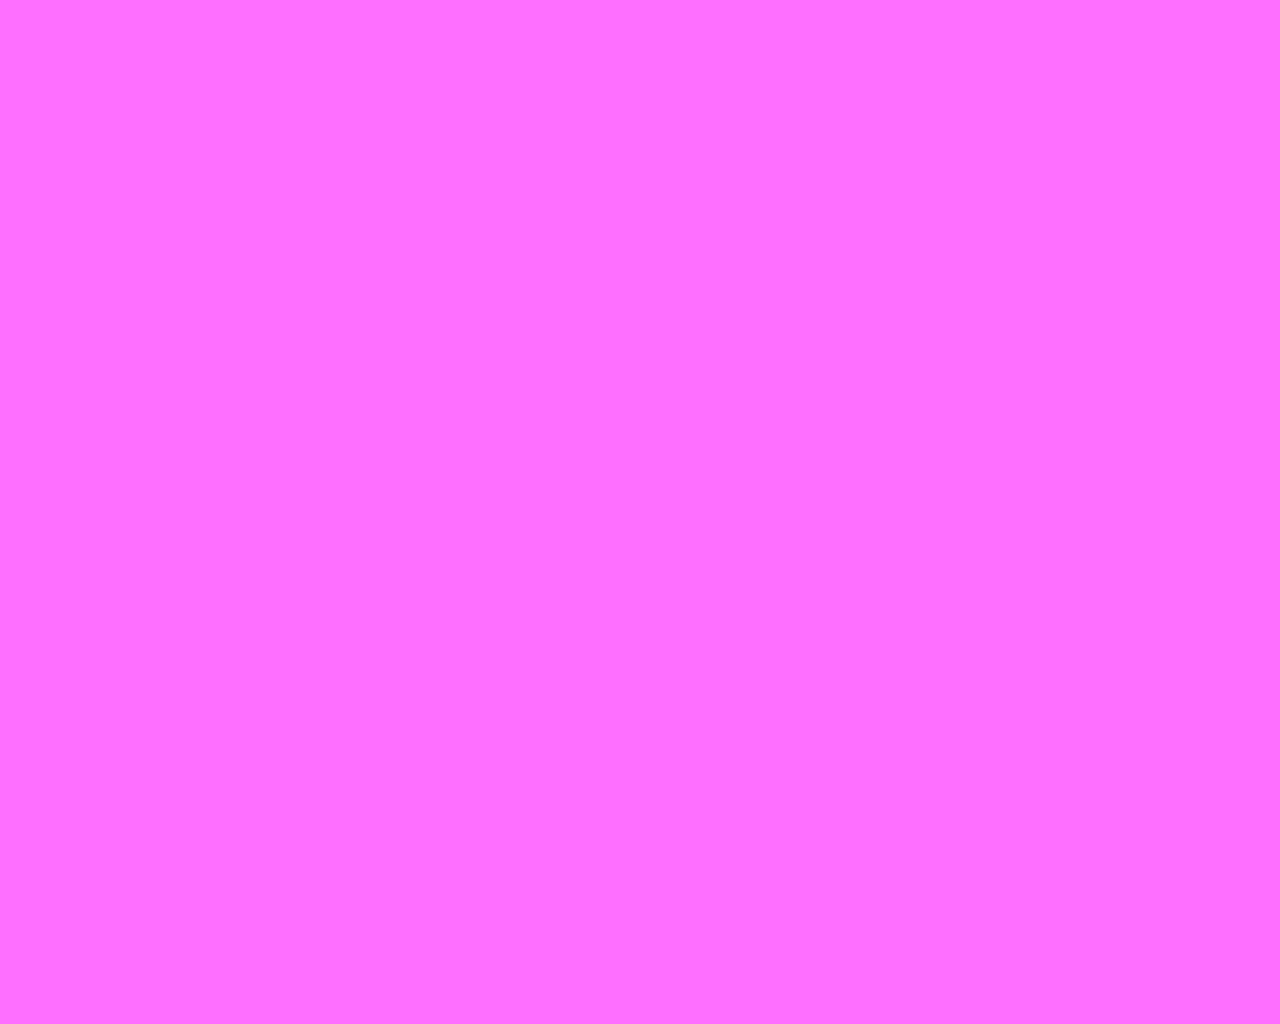 1280x1024 Ultra Pink Solid Color Background